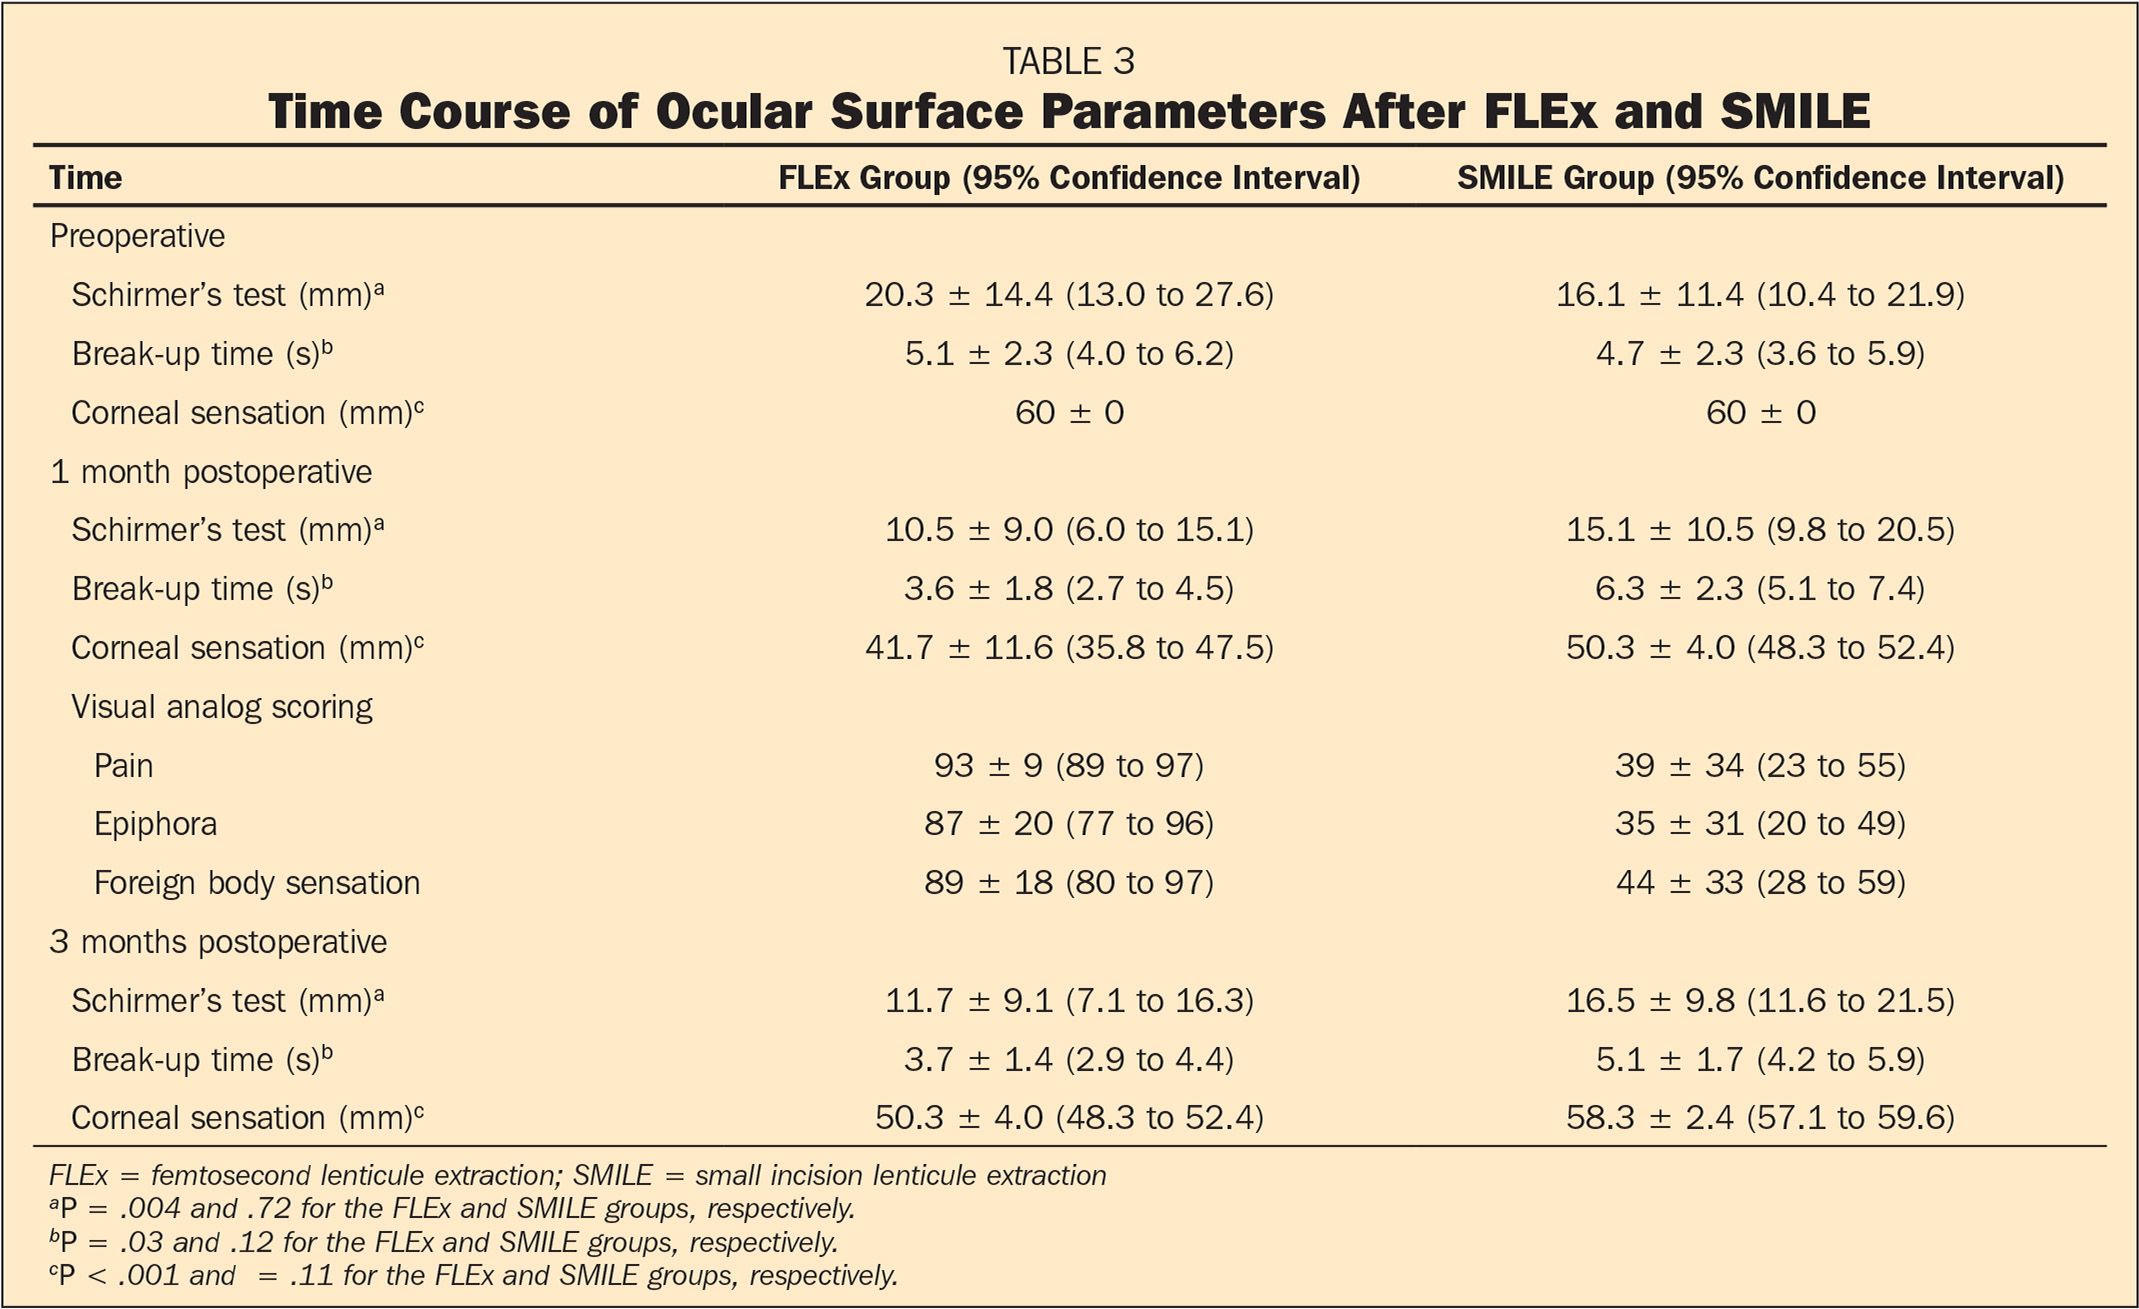 Time Course of Ocular Surface Parameters After FLEx and SMILE